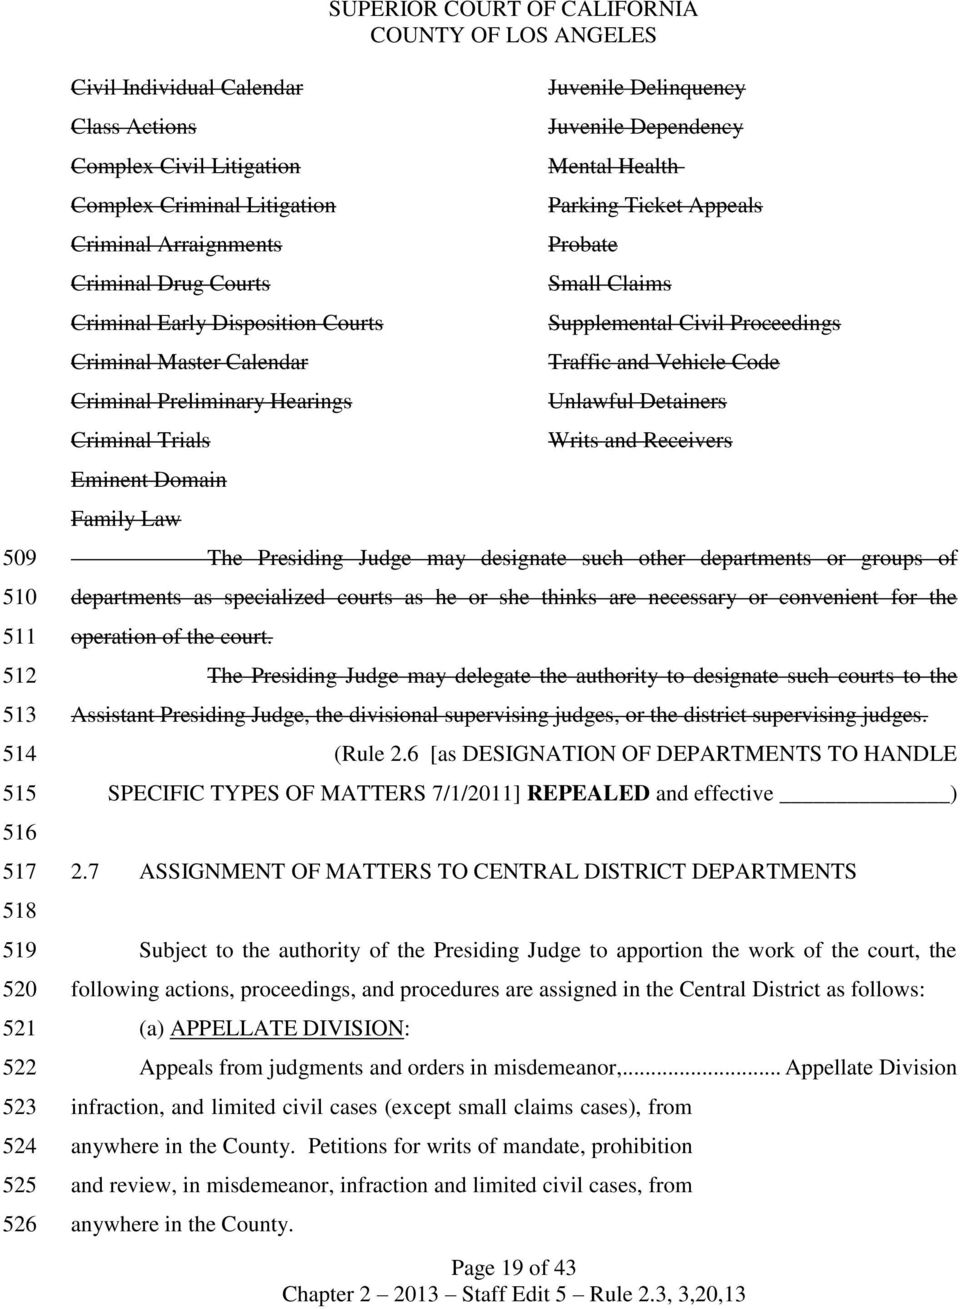 Superior Court of California County of Los Angeles - PDF